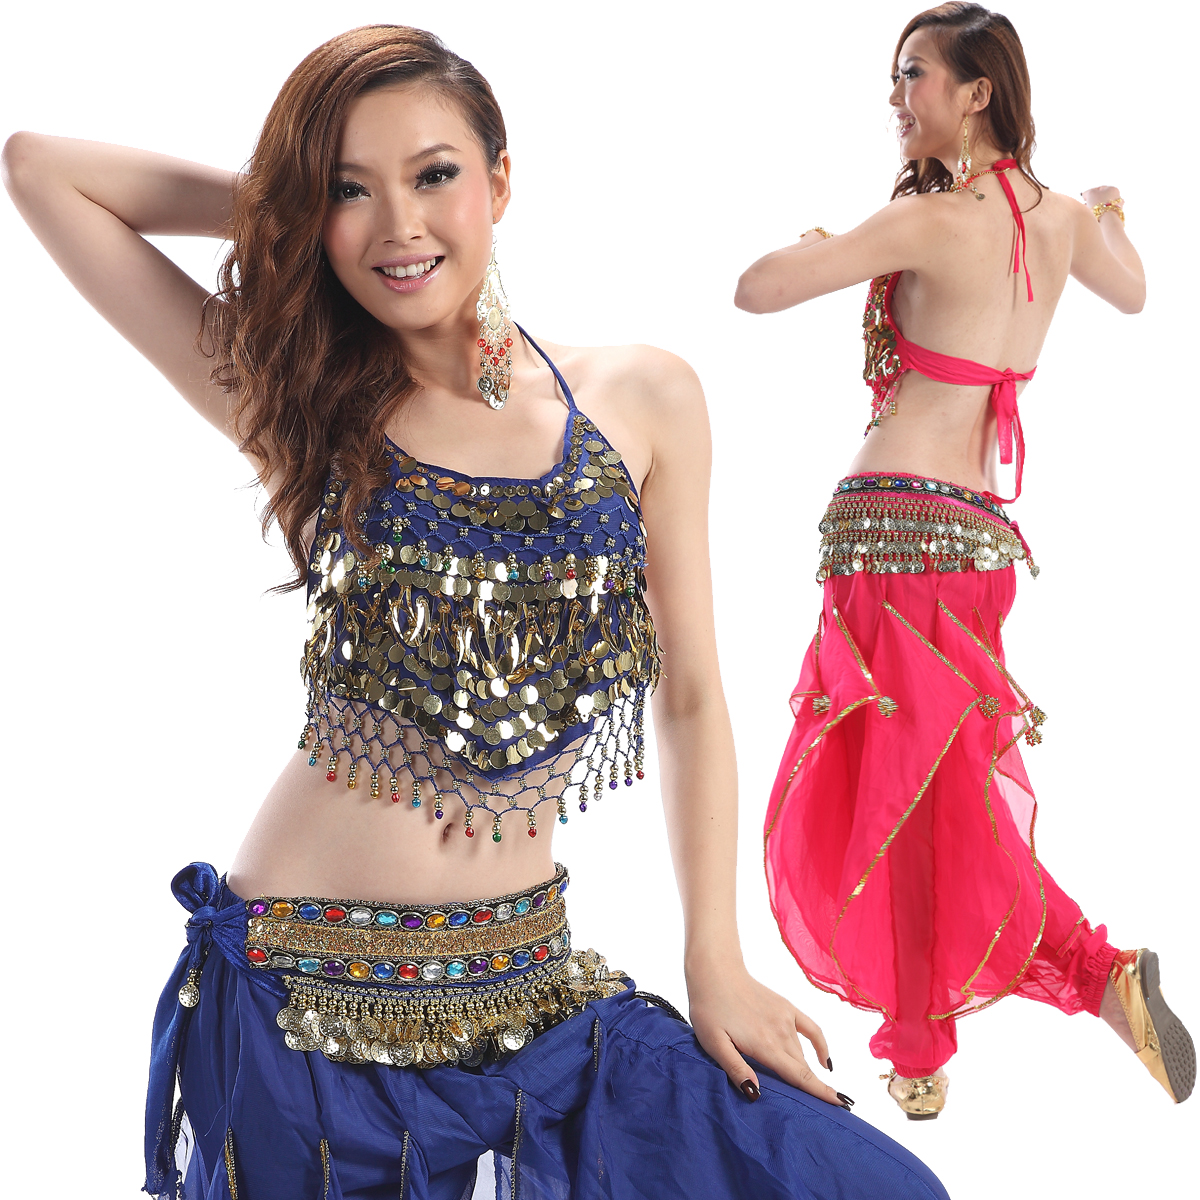 faa366c17 Belly dance costume set male indian dance girls table costume plus size